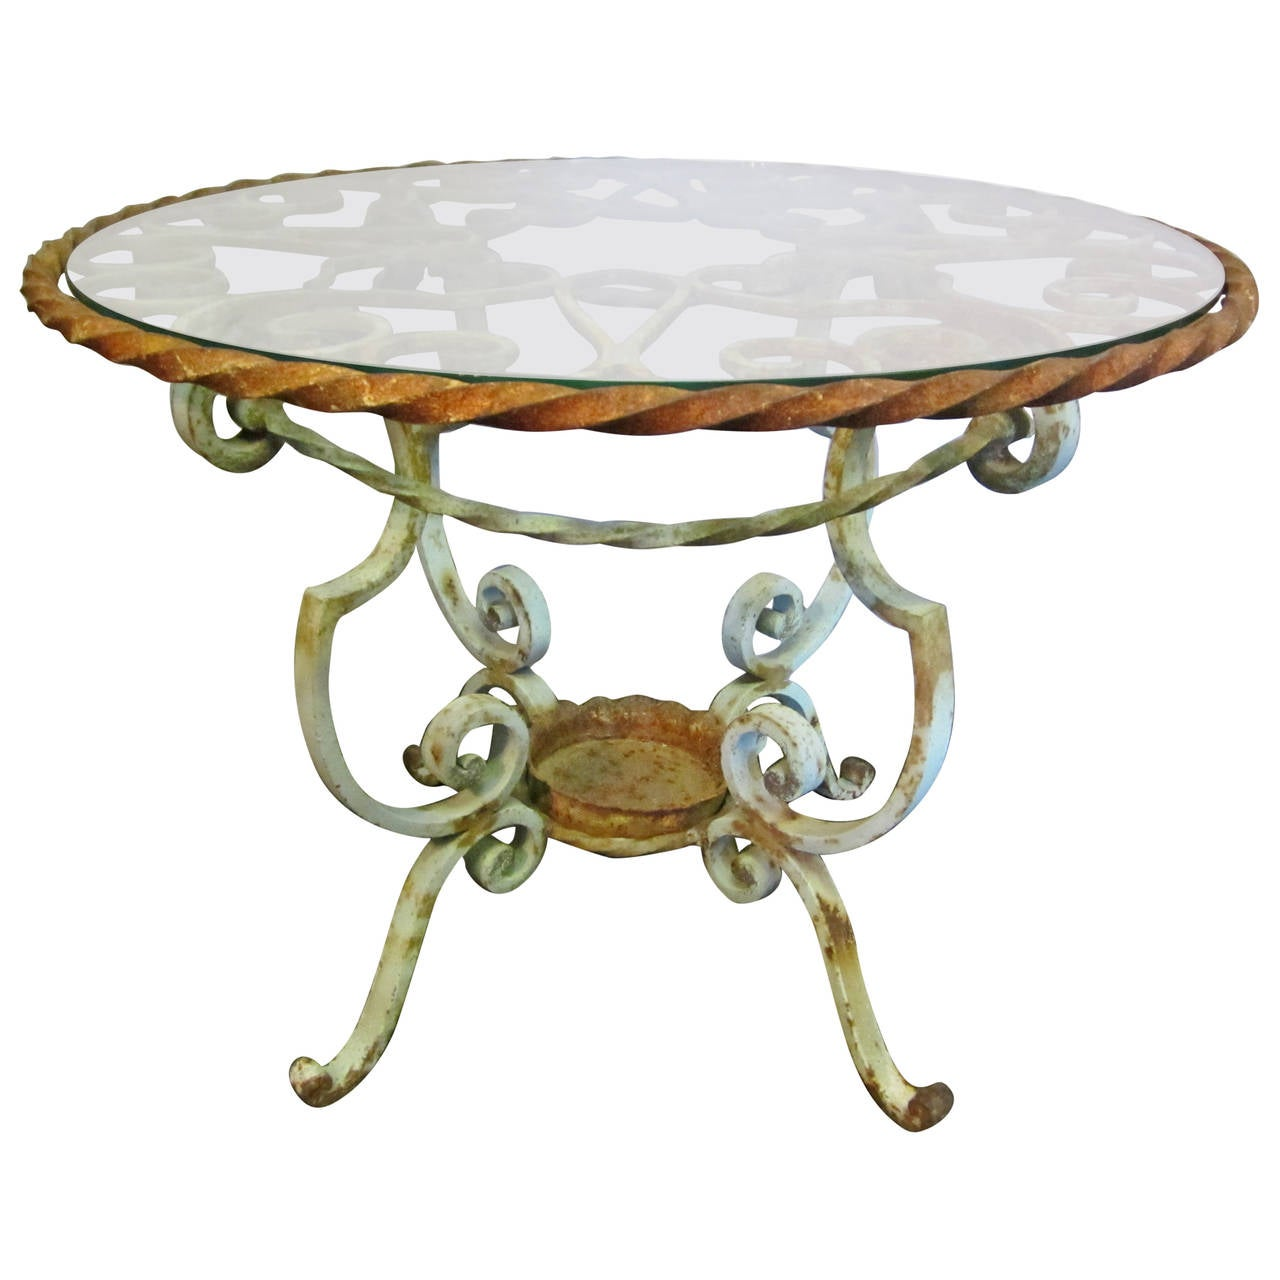 19th century french cast iron table with glass top at 1stdibs for Cast iron table with glass top